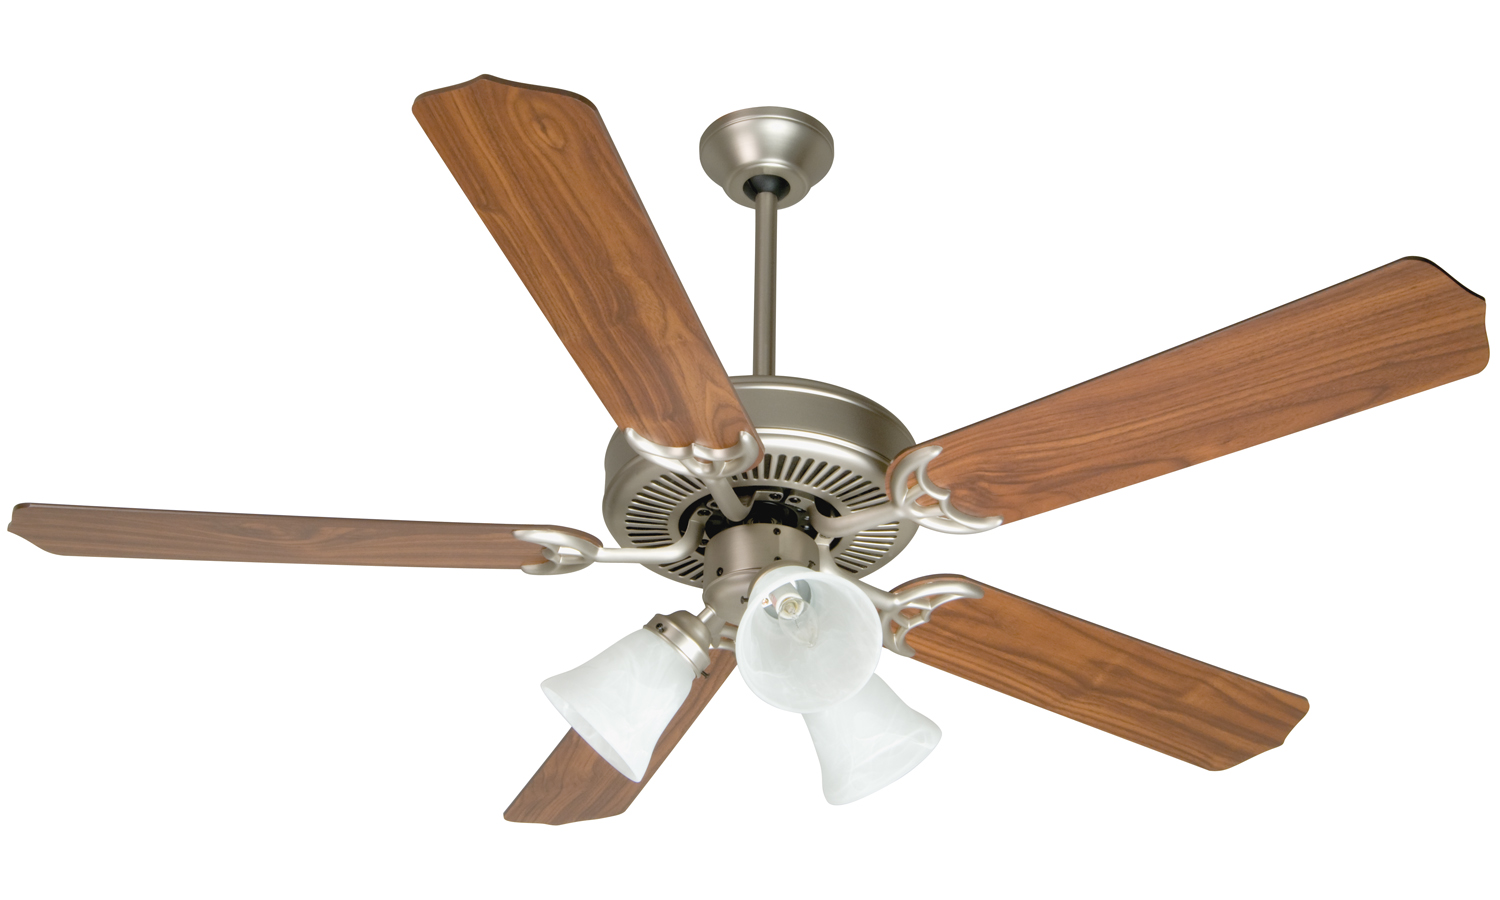 Craftmade Ceiling Fans : Craftmade k ceiling fan kit in antique white with